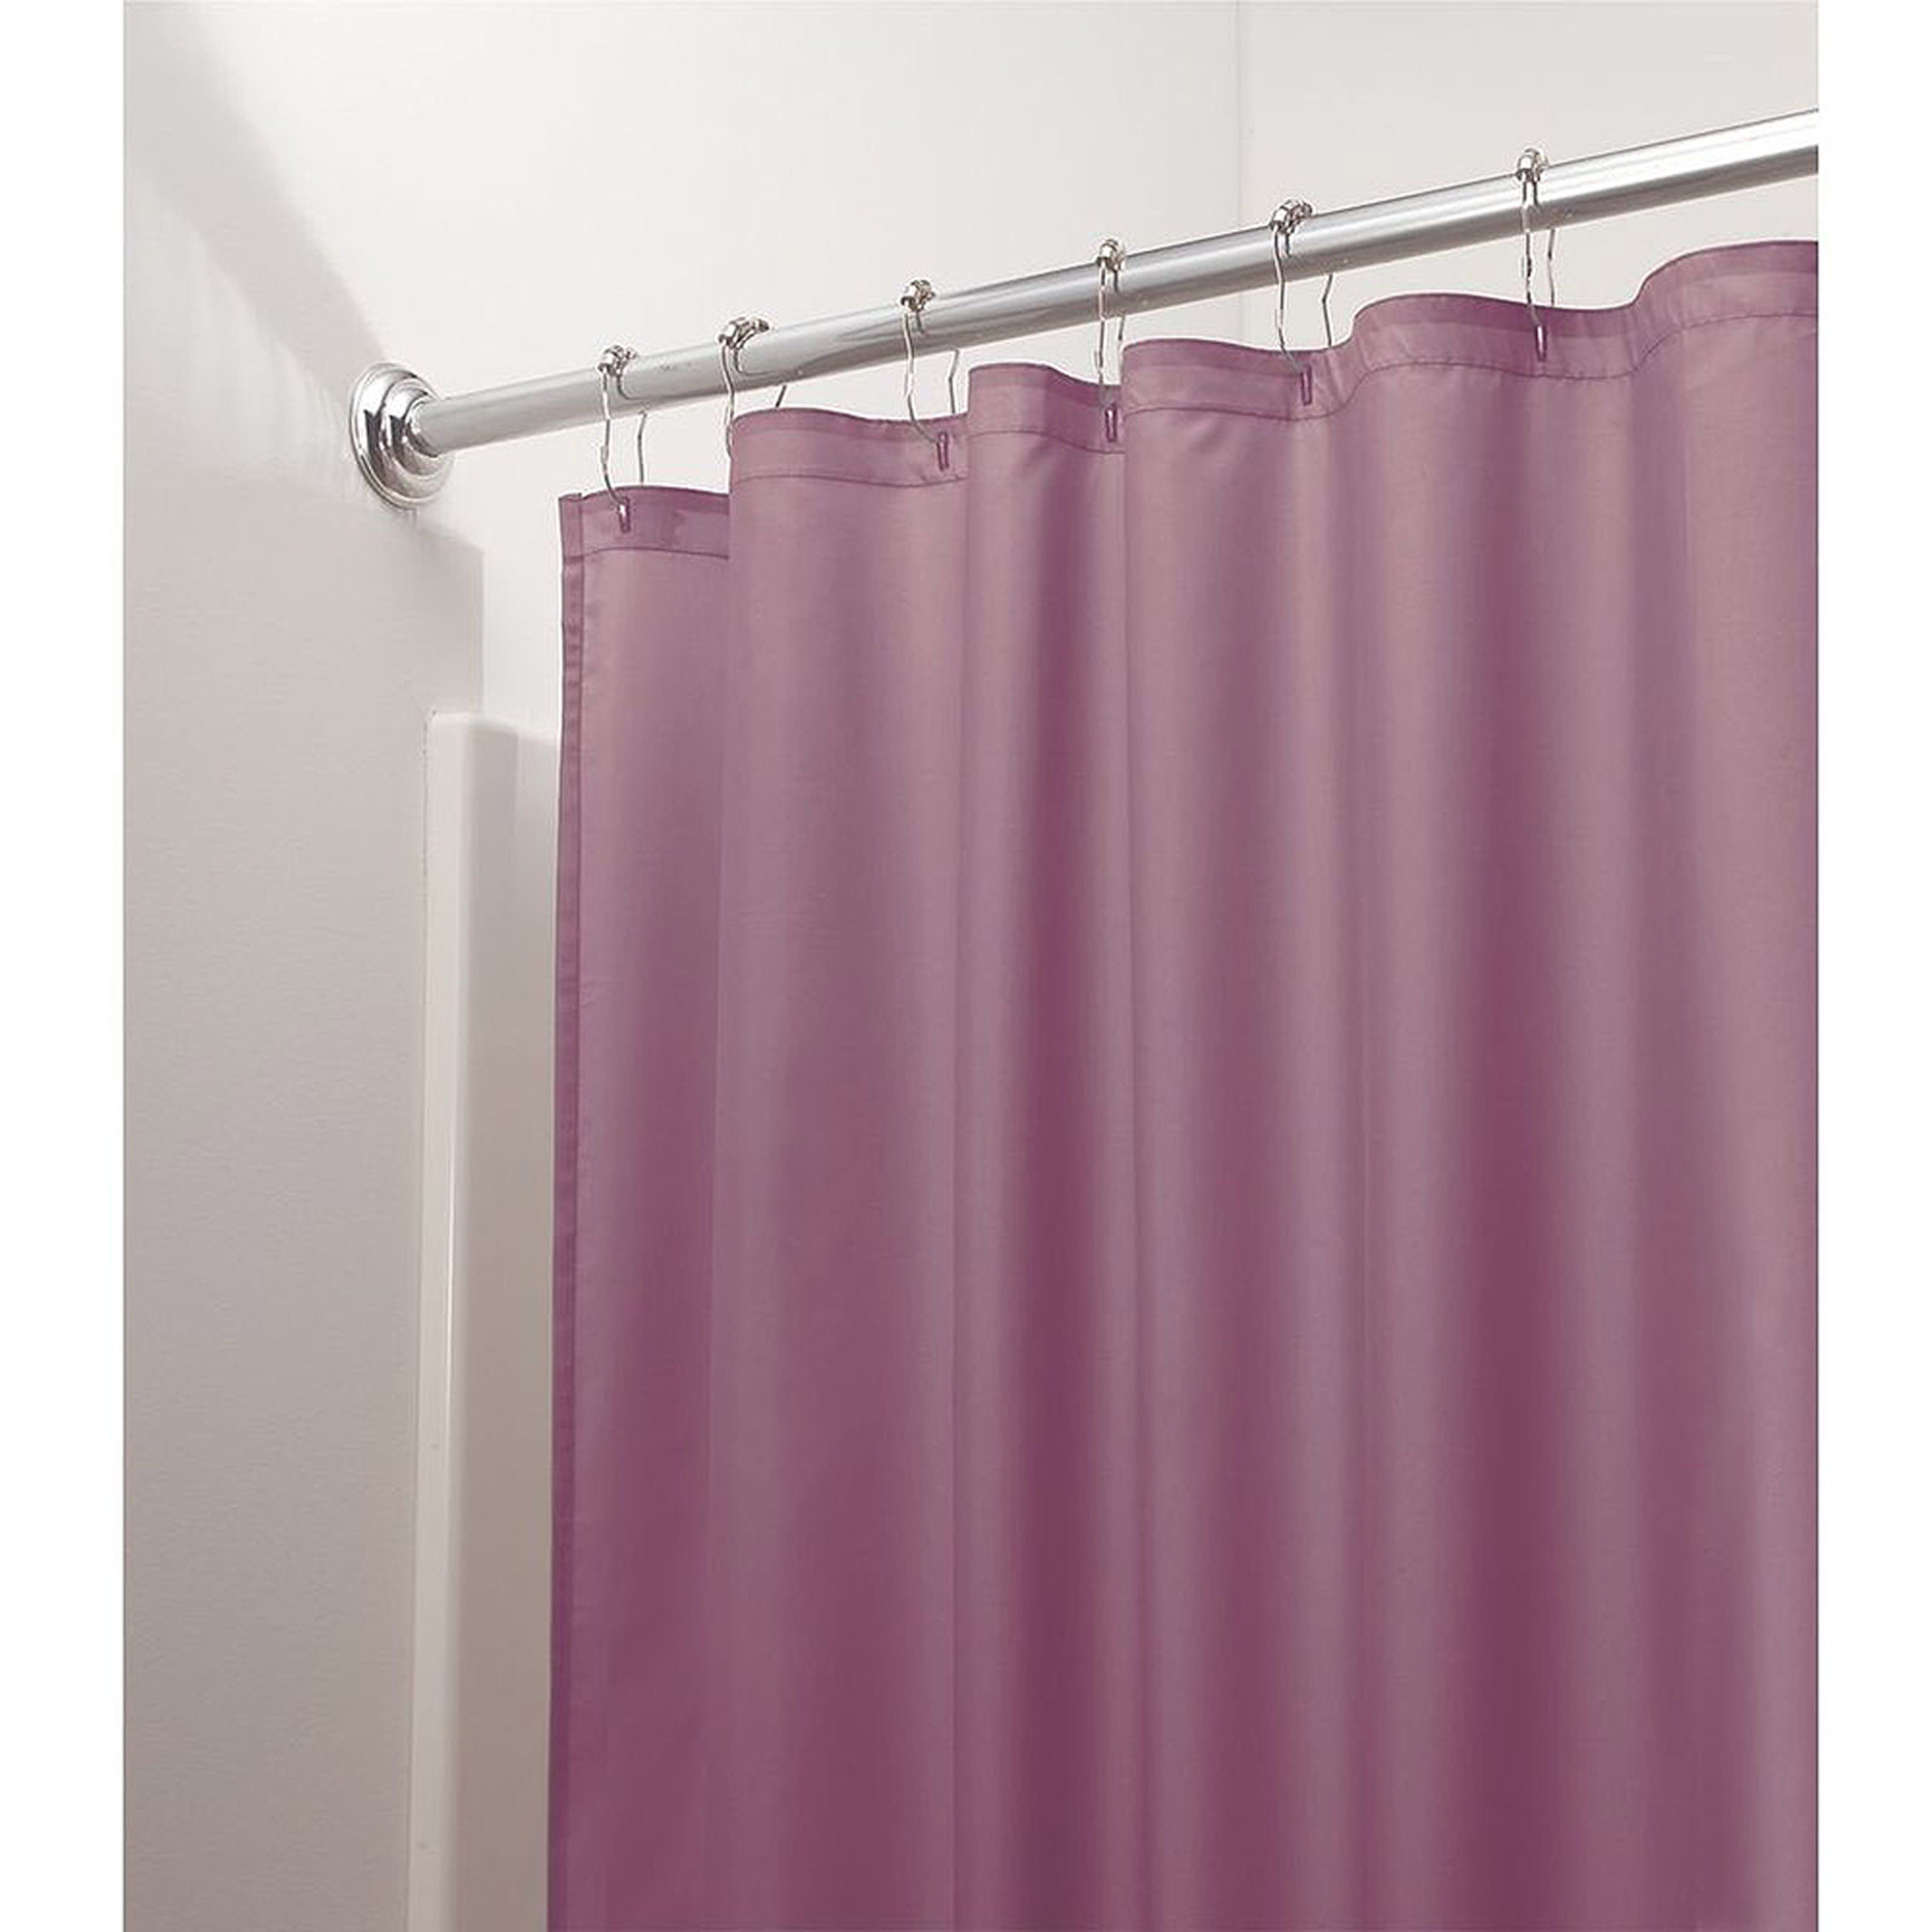 Purple shower curtain liner - Interdesign Mildew Free Water Repellent Fabric Shower Curtain Liner Various Sizes Walmart Com